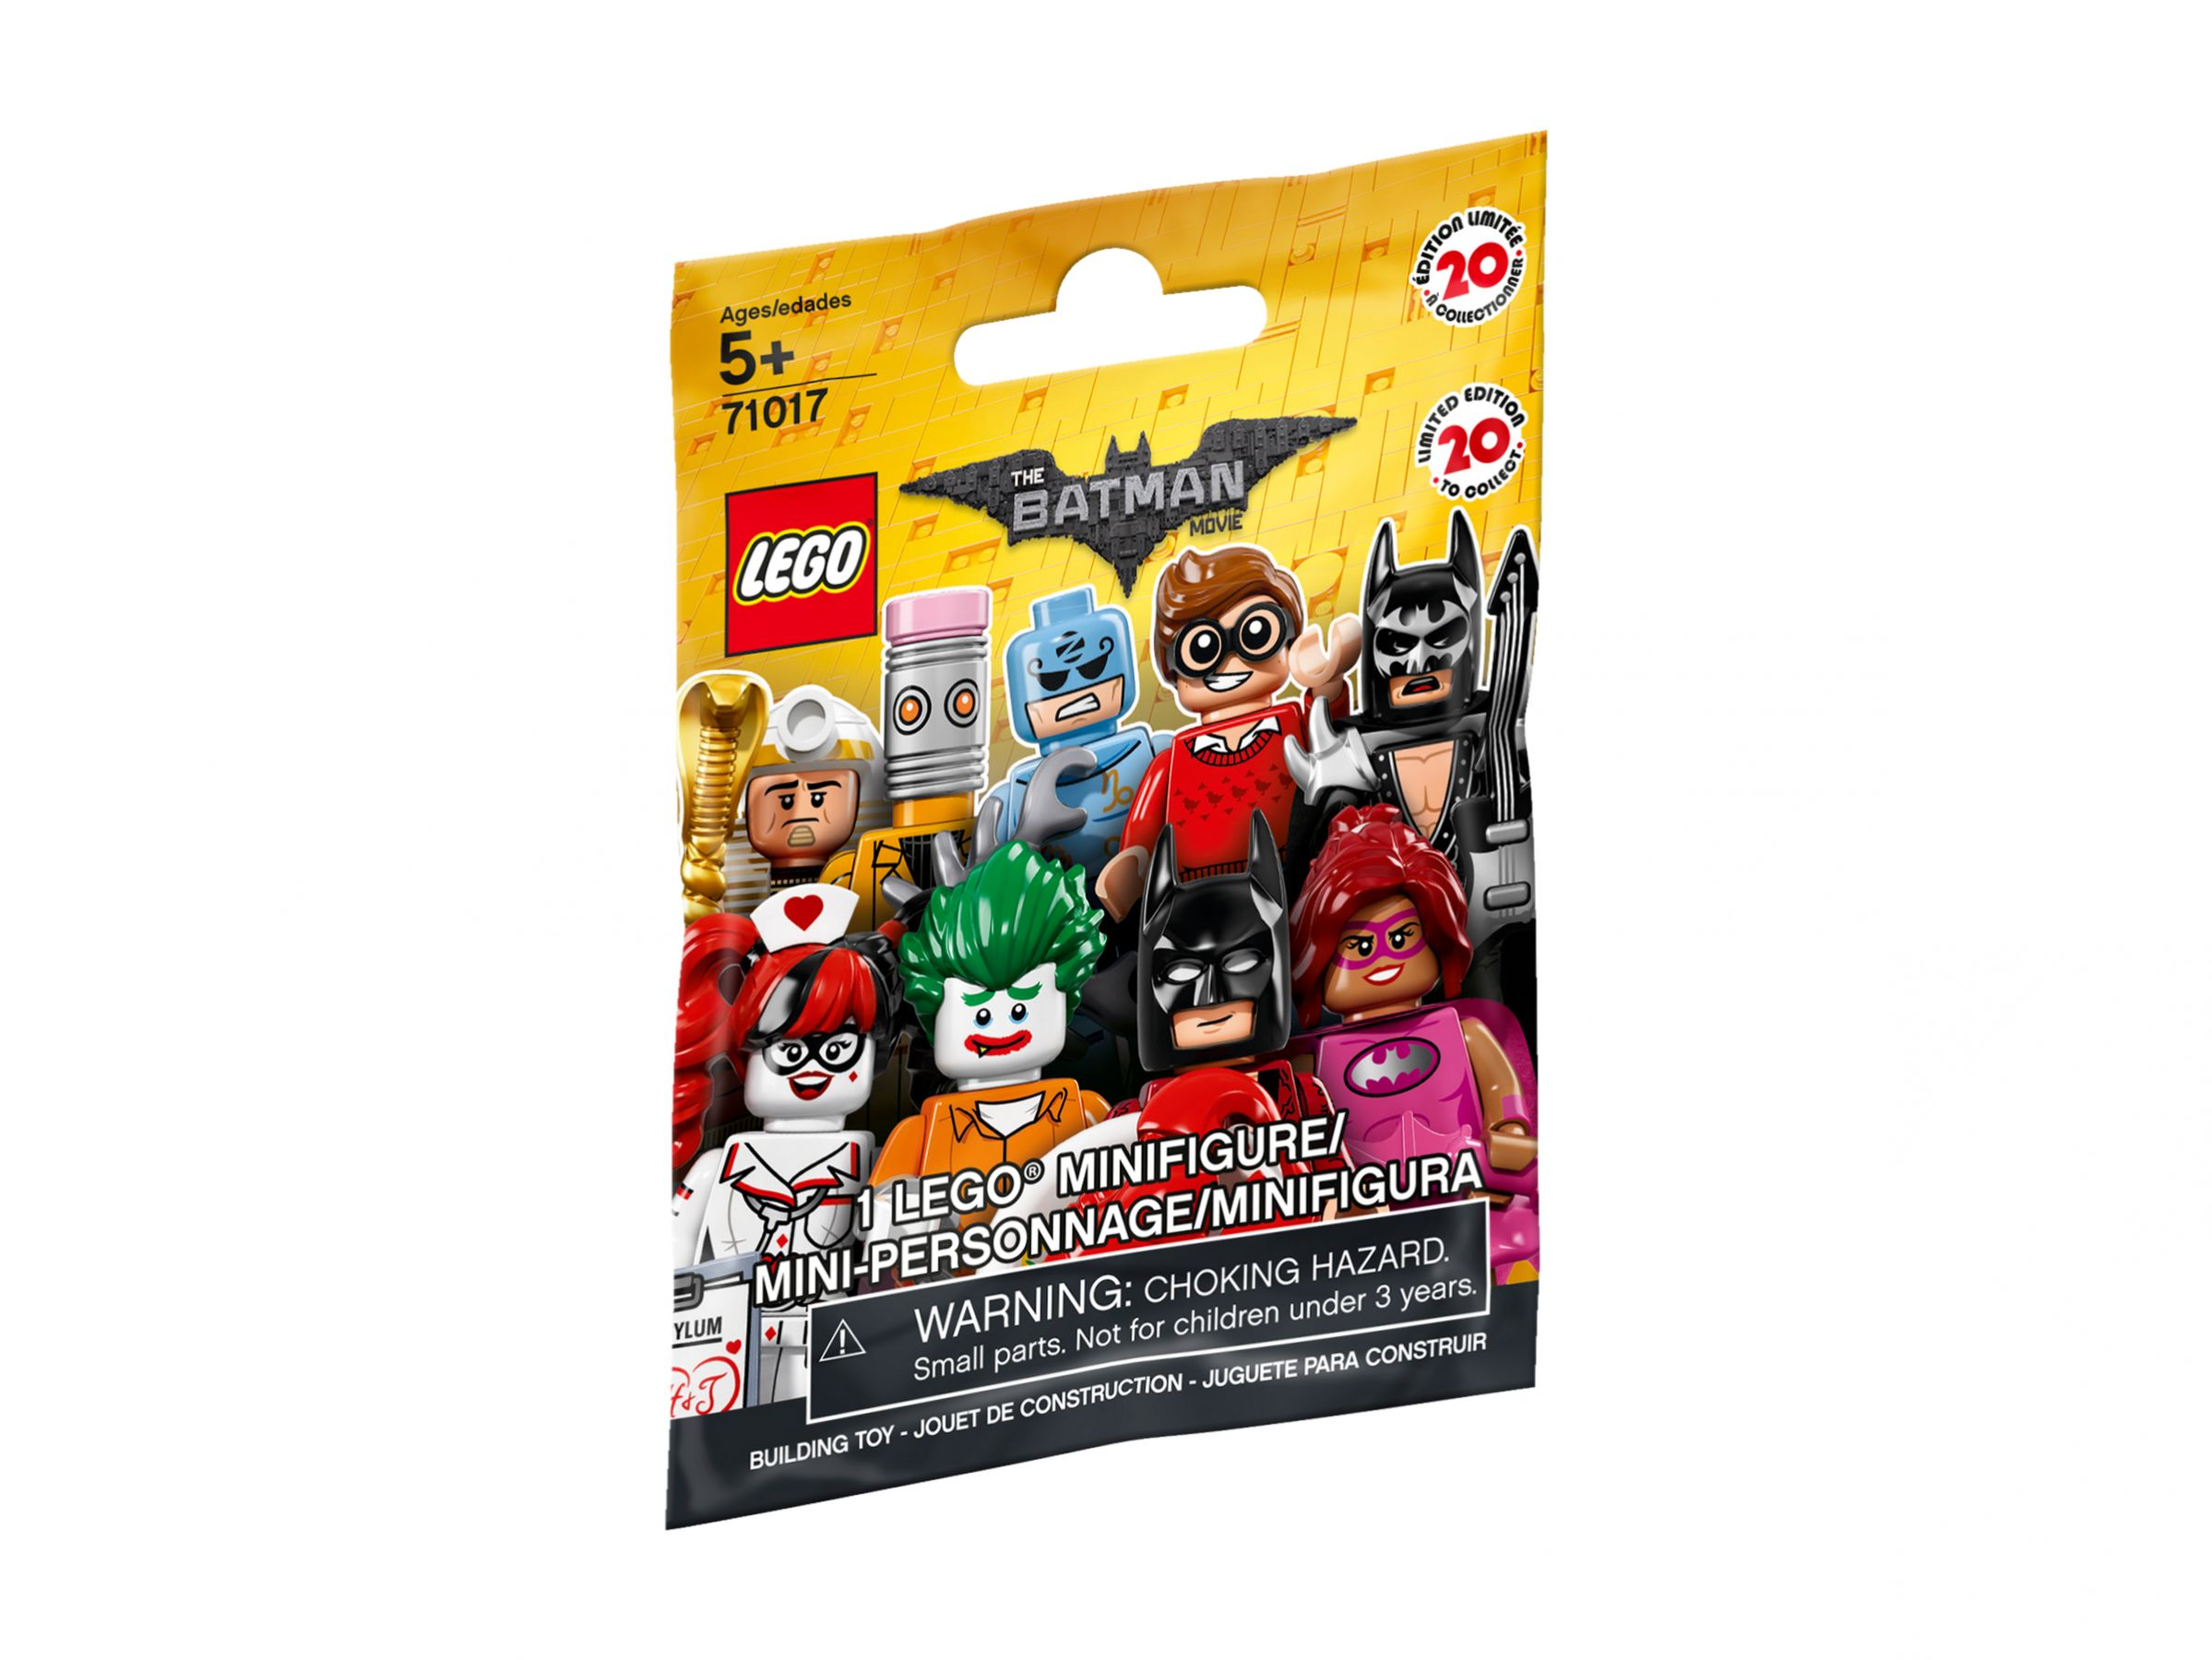 LEGO Collectable Minifigures 71017 LEGO® Batman Movie Minifiguren Serie